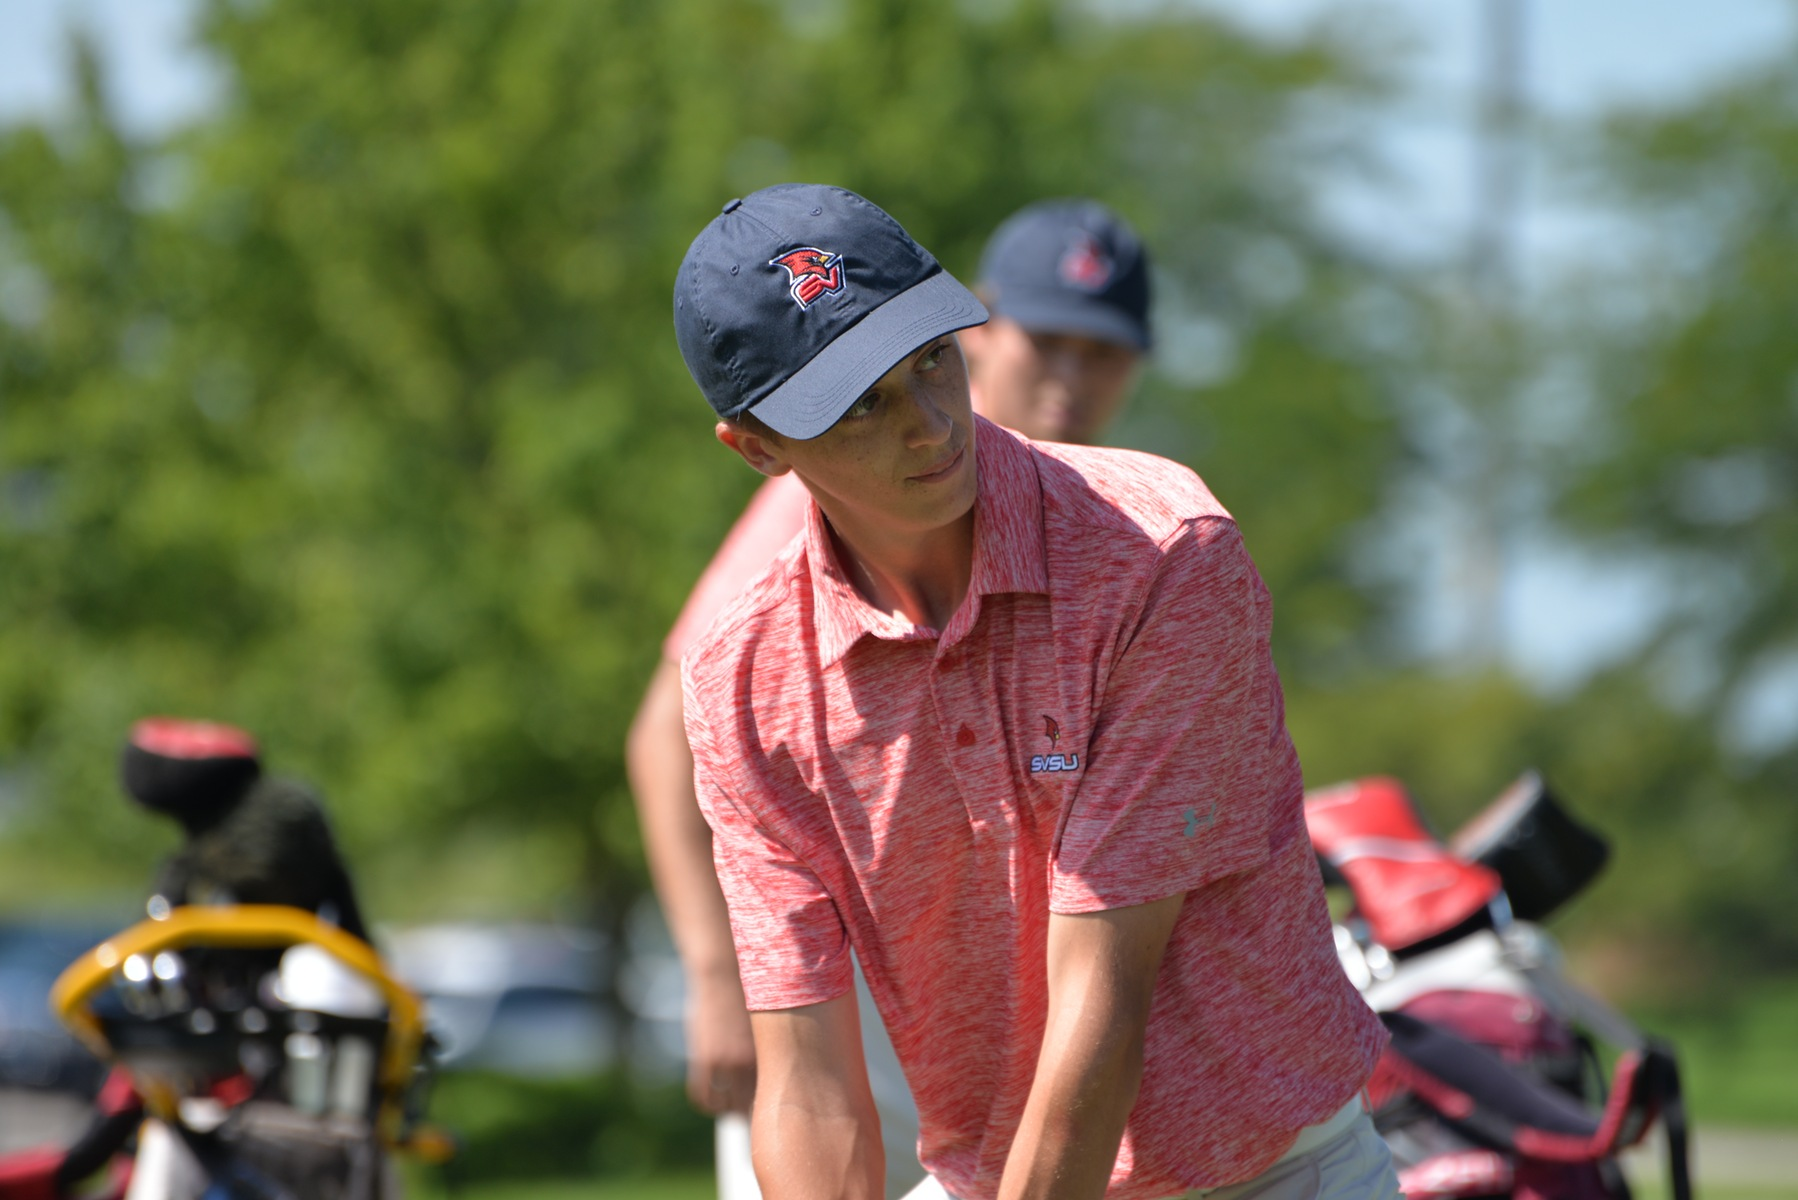 SVSU Men 2nd after opening 36 holes at Kyle Ryman Memorial